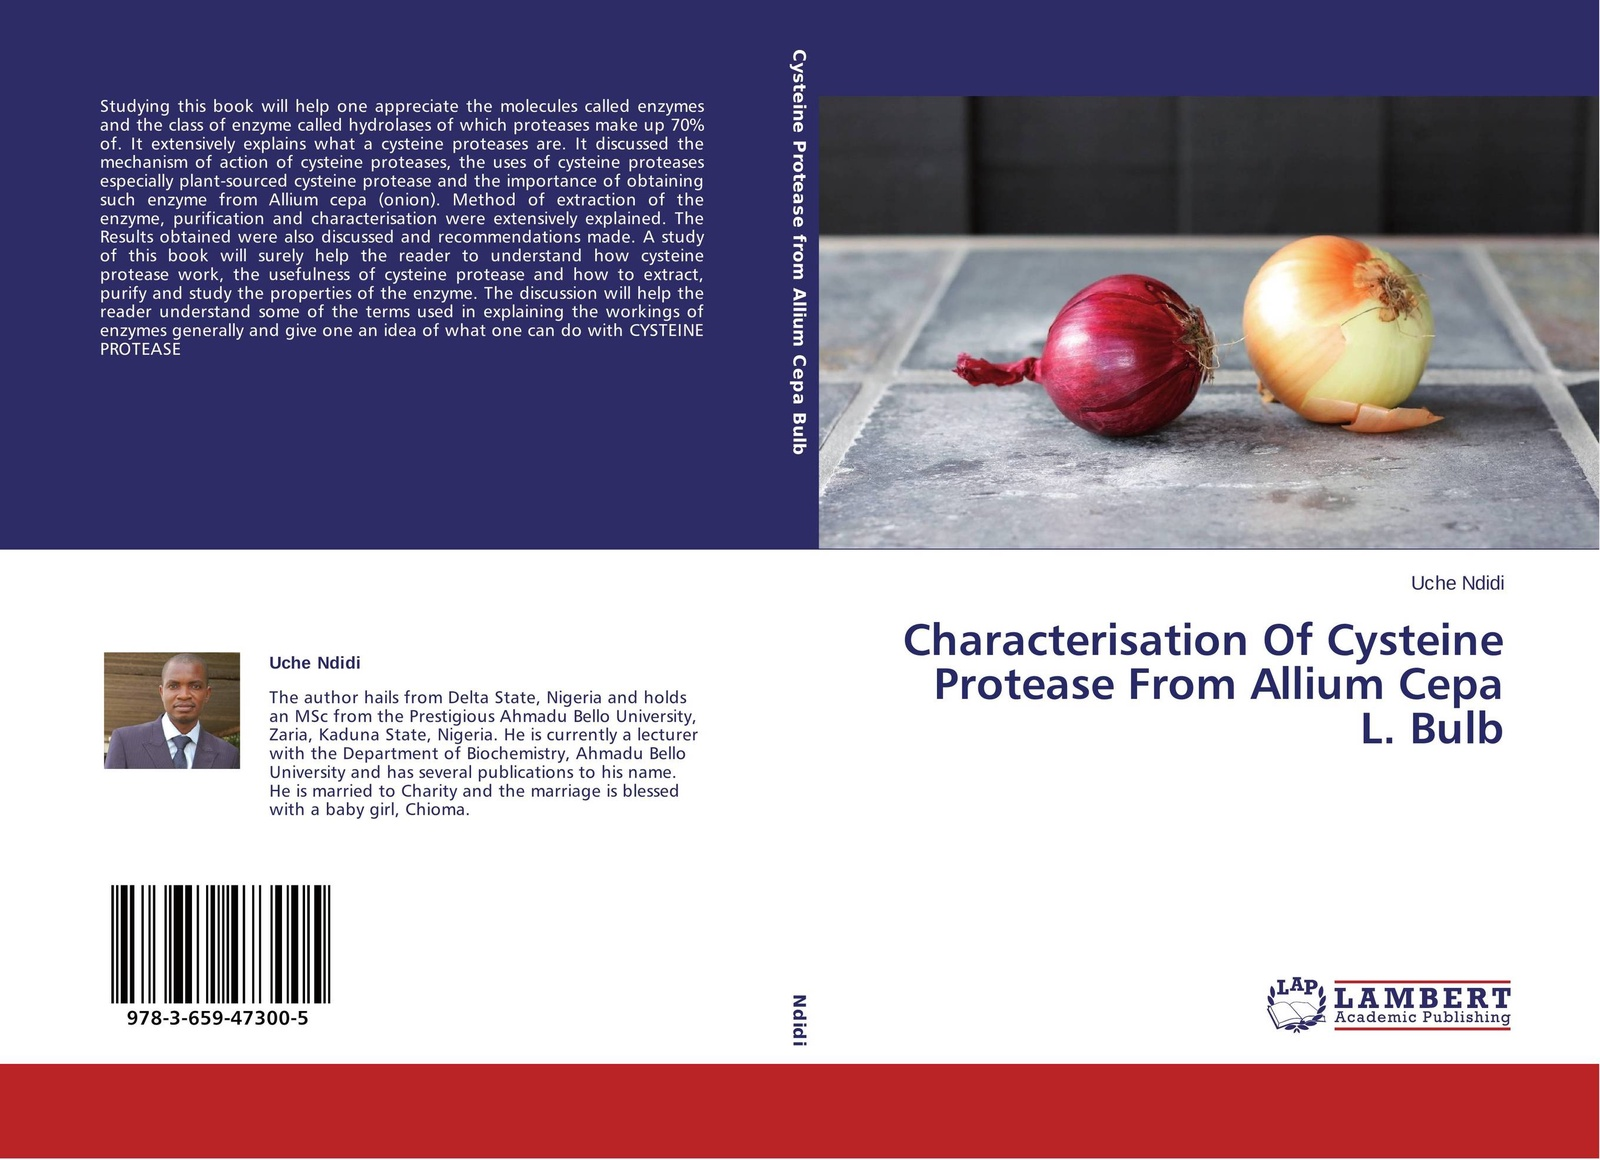 Uche Ndidi Characterisation Of Cysteine Protease From Allium Cepa L. Bulb neha khandelwal protease inhibitors potential and constraints